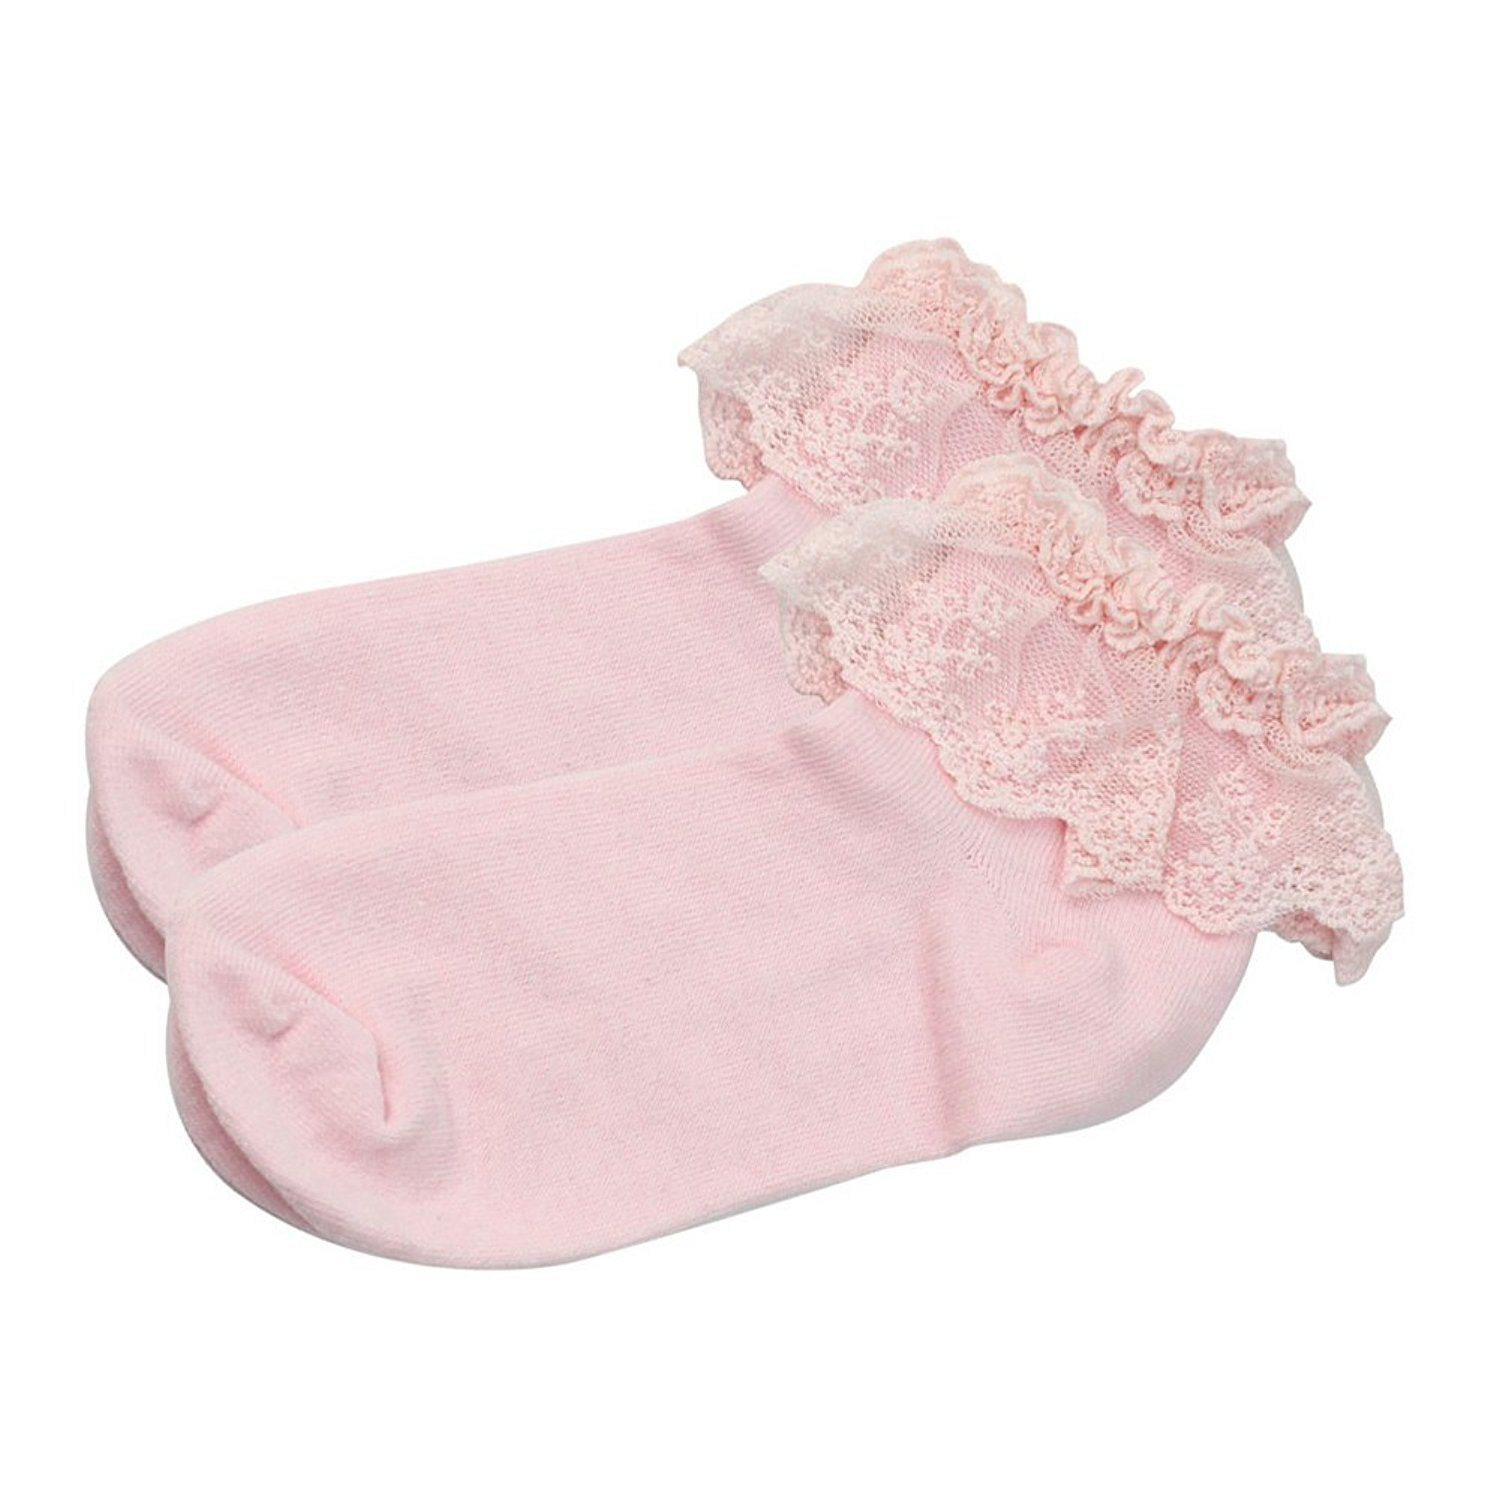 Vintage Cotton Lace Ruffle Frilly Ankle Socks Fashion La s Princes